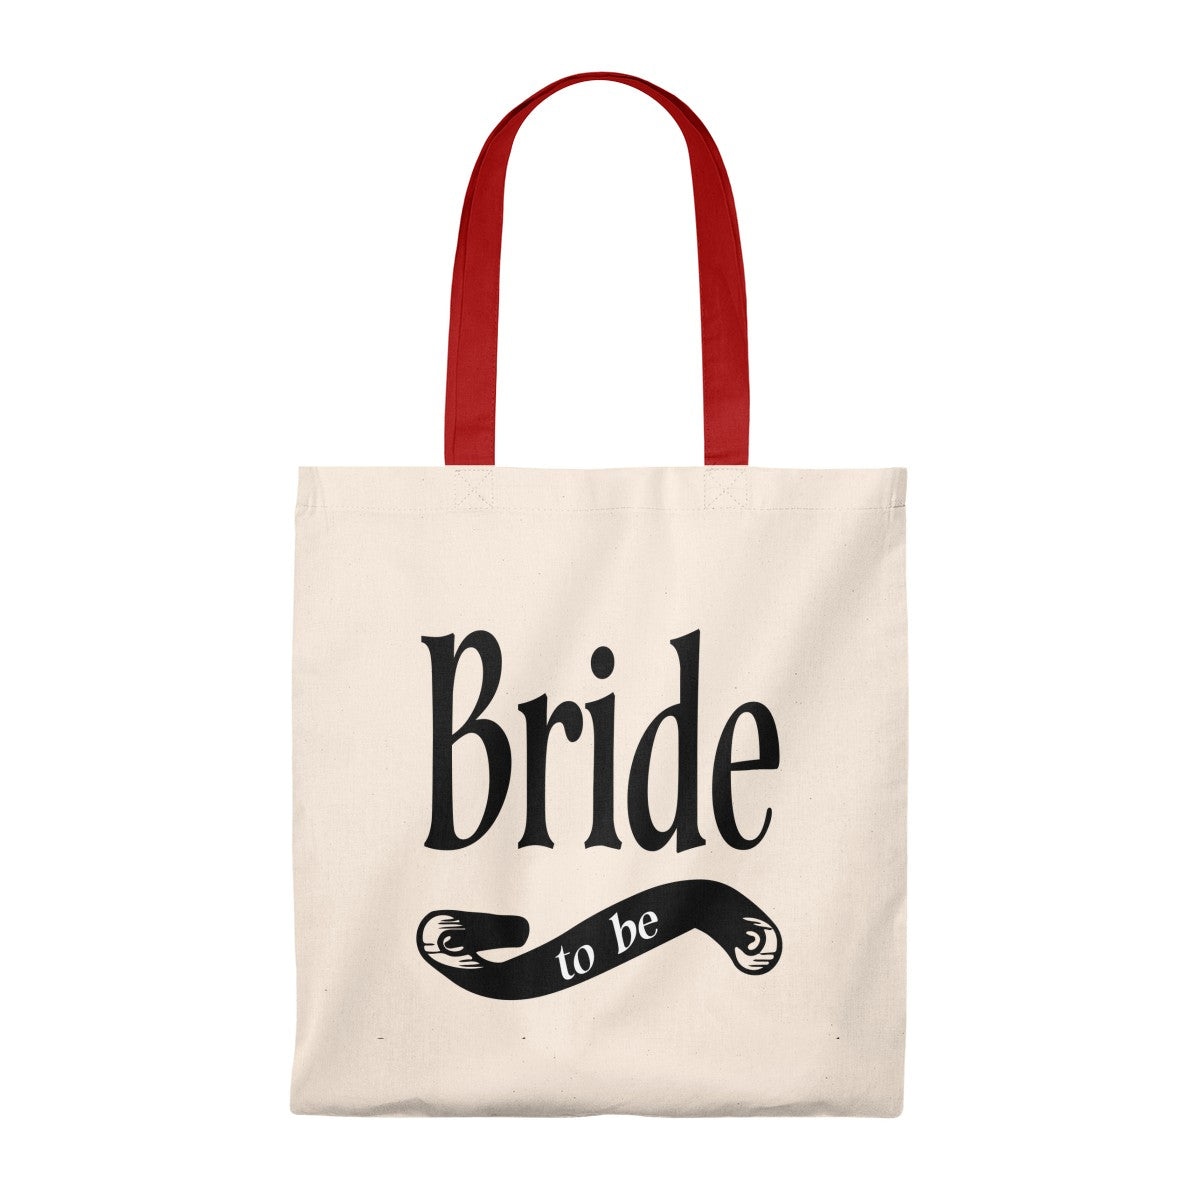 Bride to Be Tote Bag - Wedding Party Gift